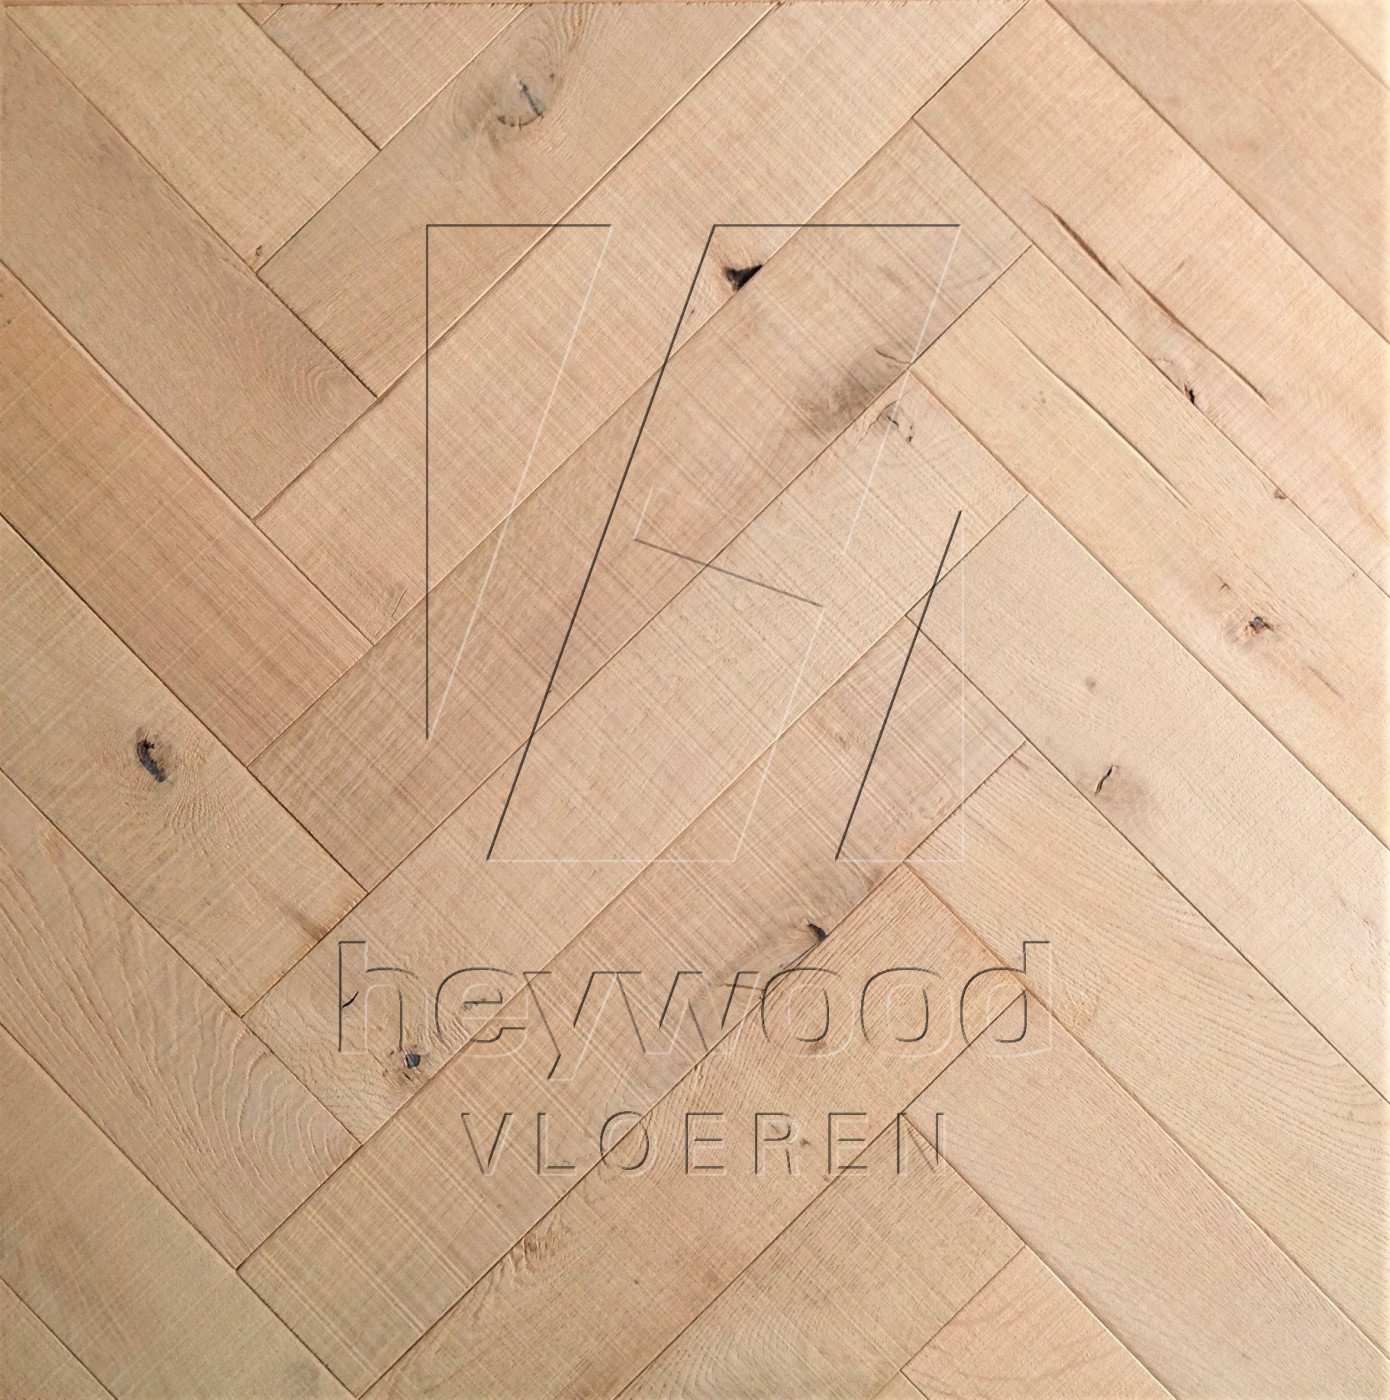 Knotting Hill Herringbone 'Virgin' in Herringbone of Pattern & Panel Floors